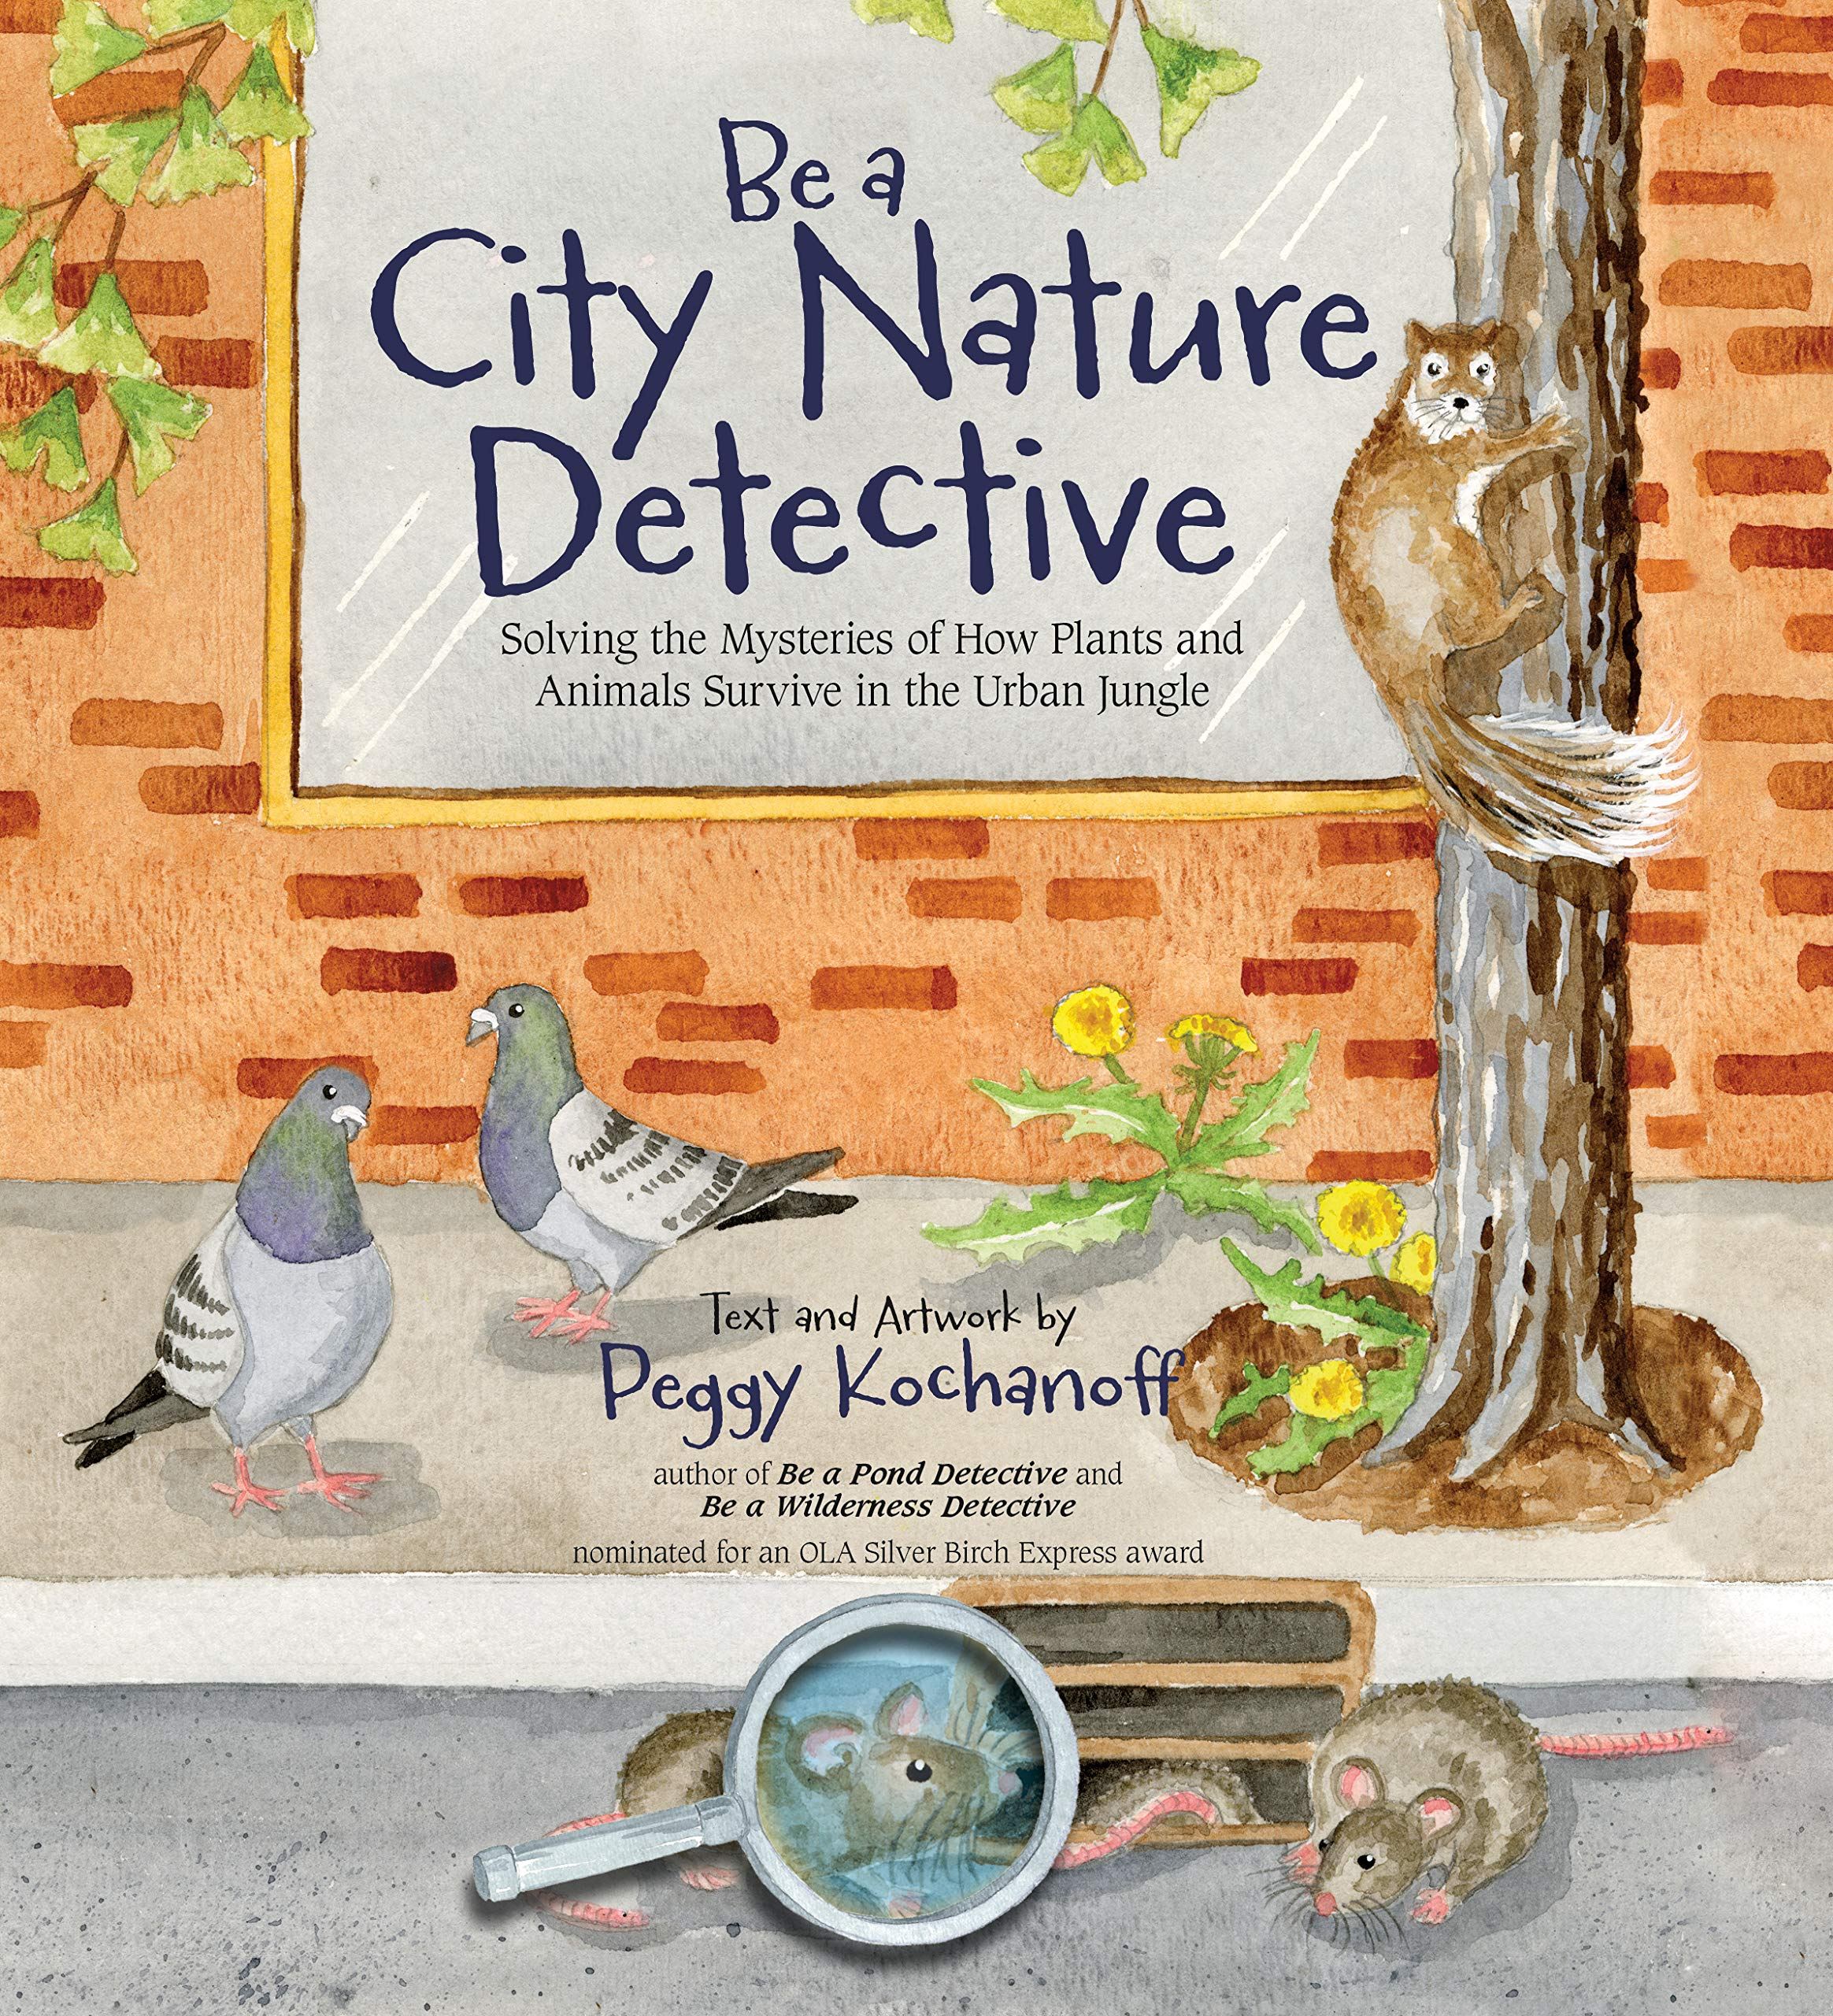 Be a City Nature Detective: Solving the Mysteries of How